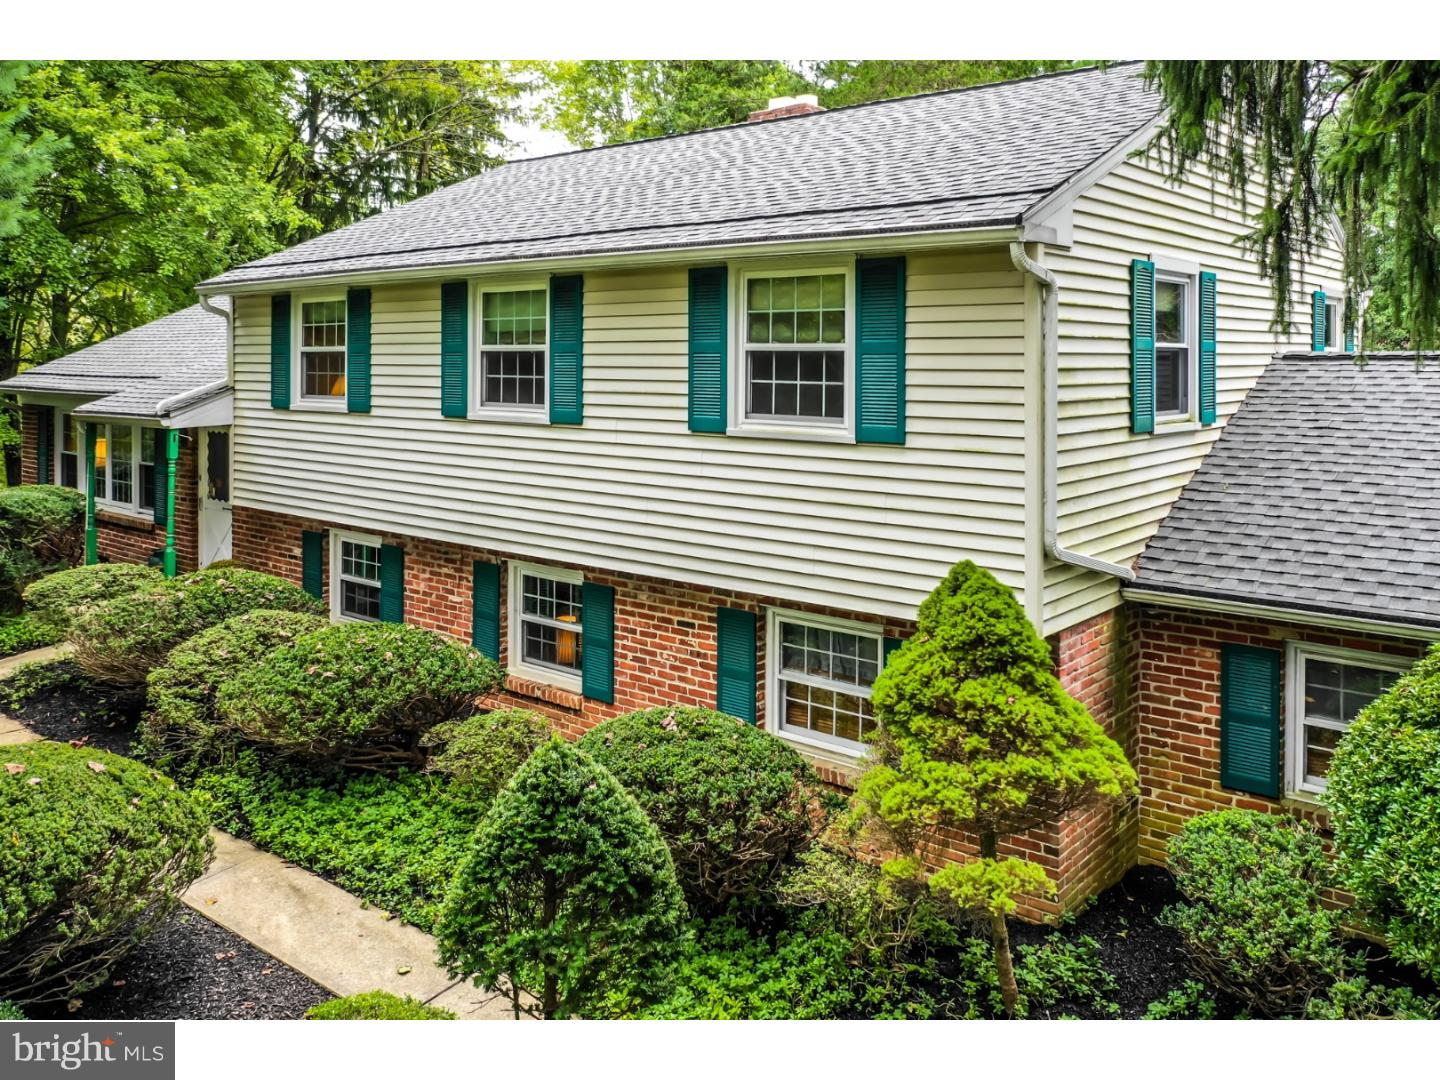 204 Edith Lane West Chester , PA 19380